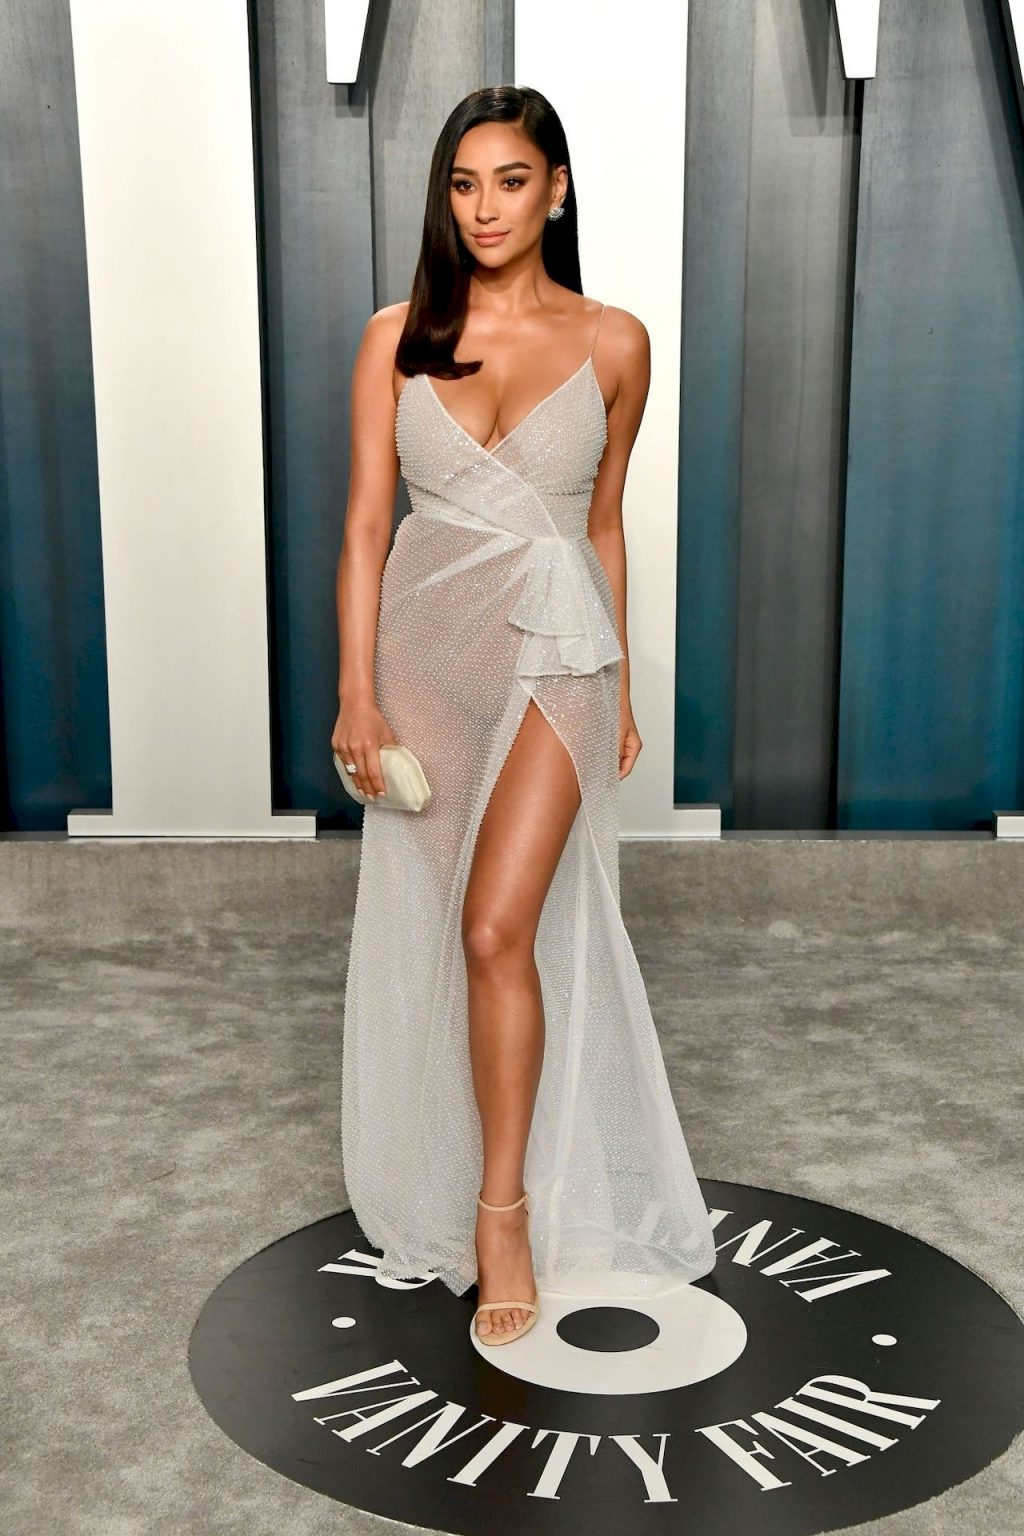 Shay Mitchell Shows Her Cleavage & Sexy Legs at the 2020 Vanity Fair Oscar Party (42 Photos + Video)